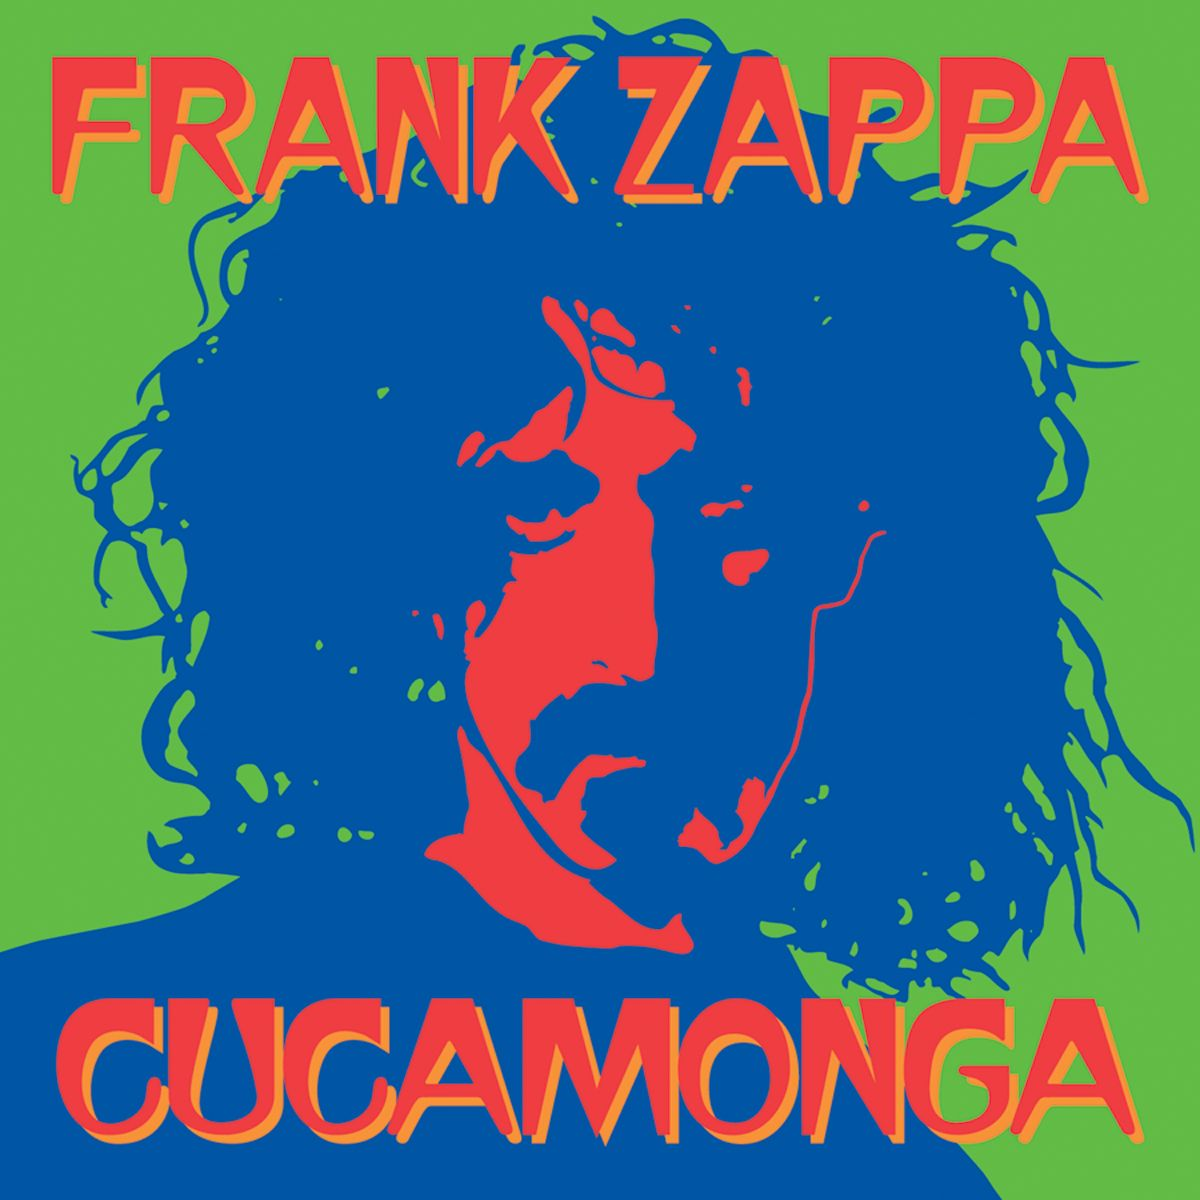 Frank Zappa Quot Cucamonga Quot Cd Cover This Was A Del Fi